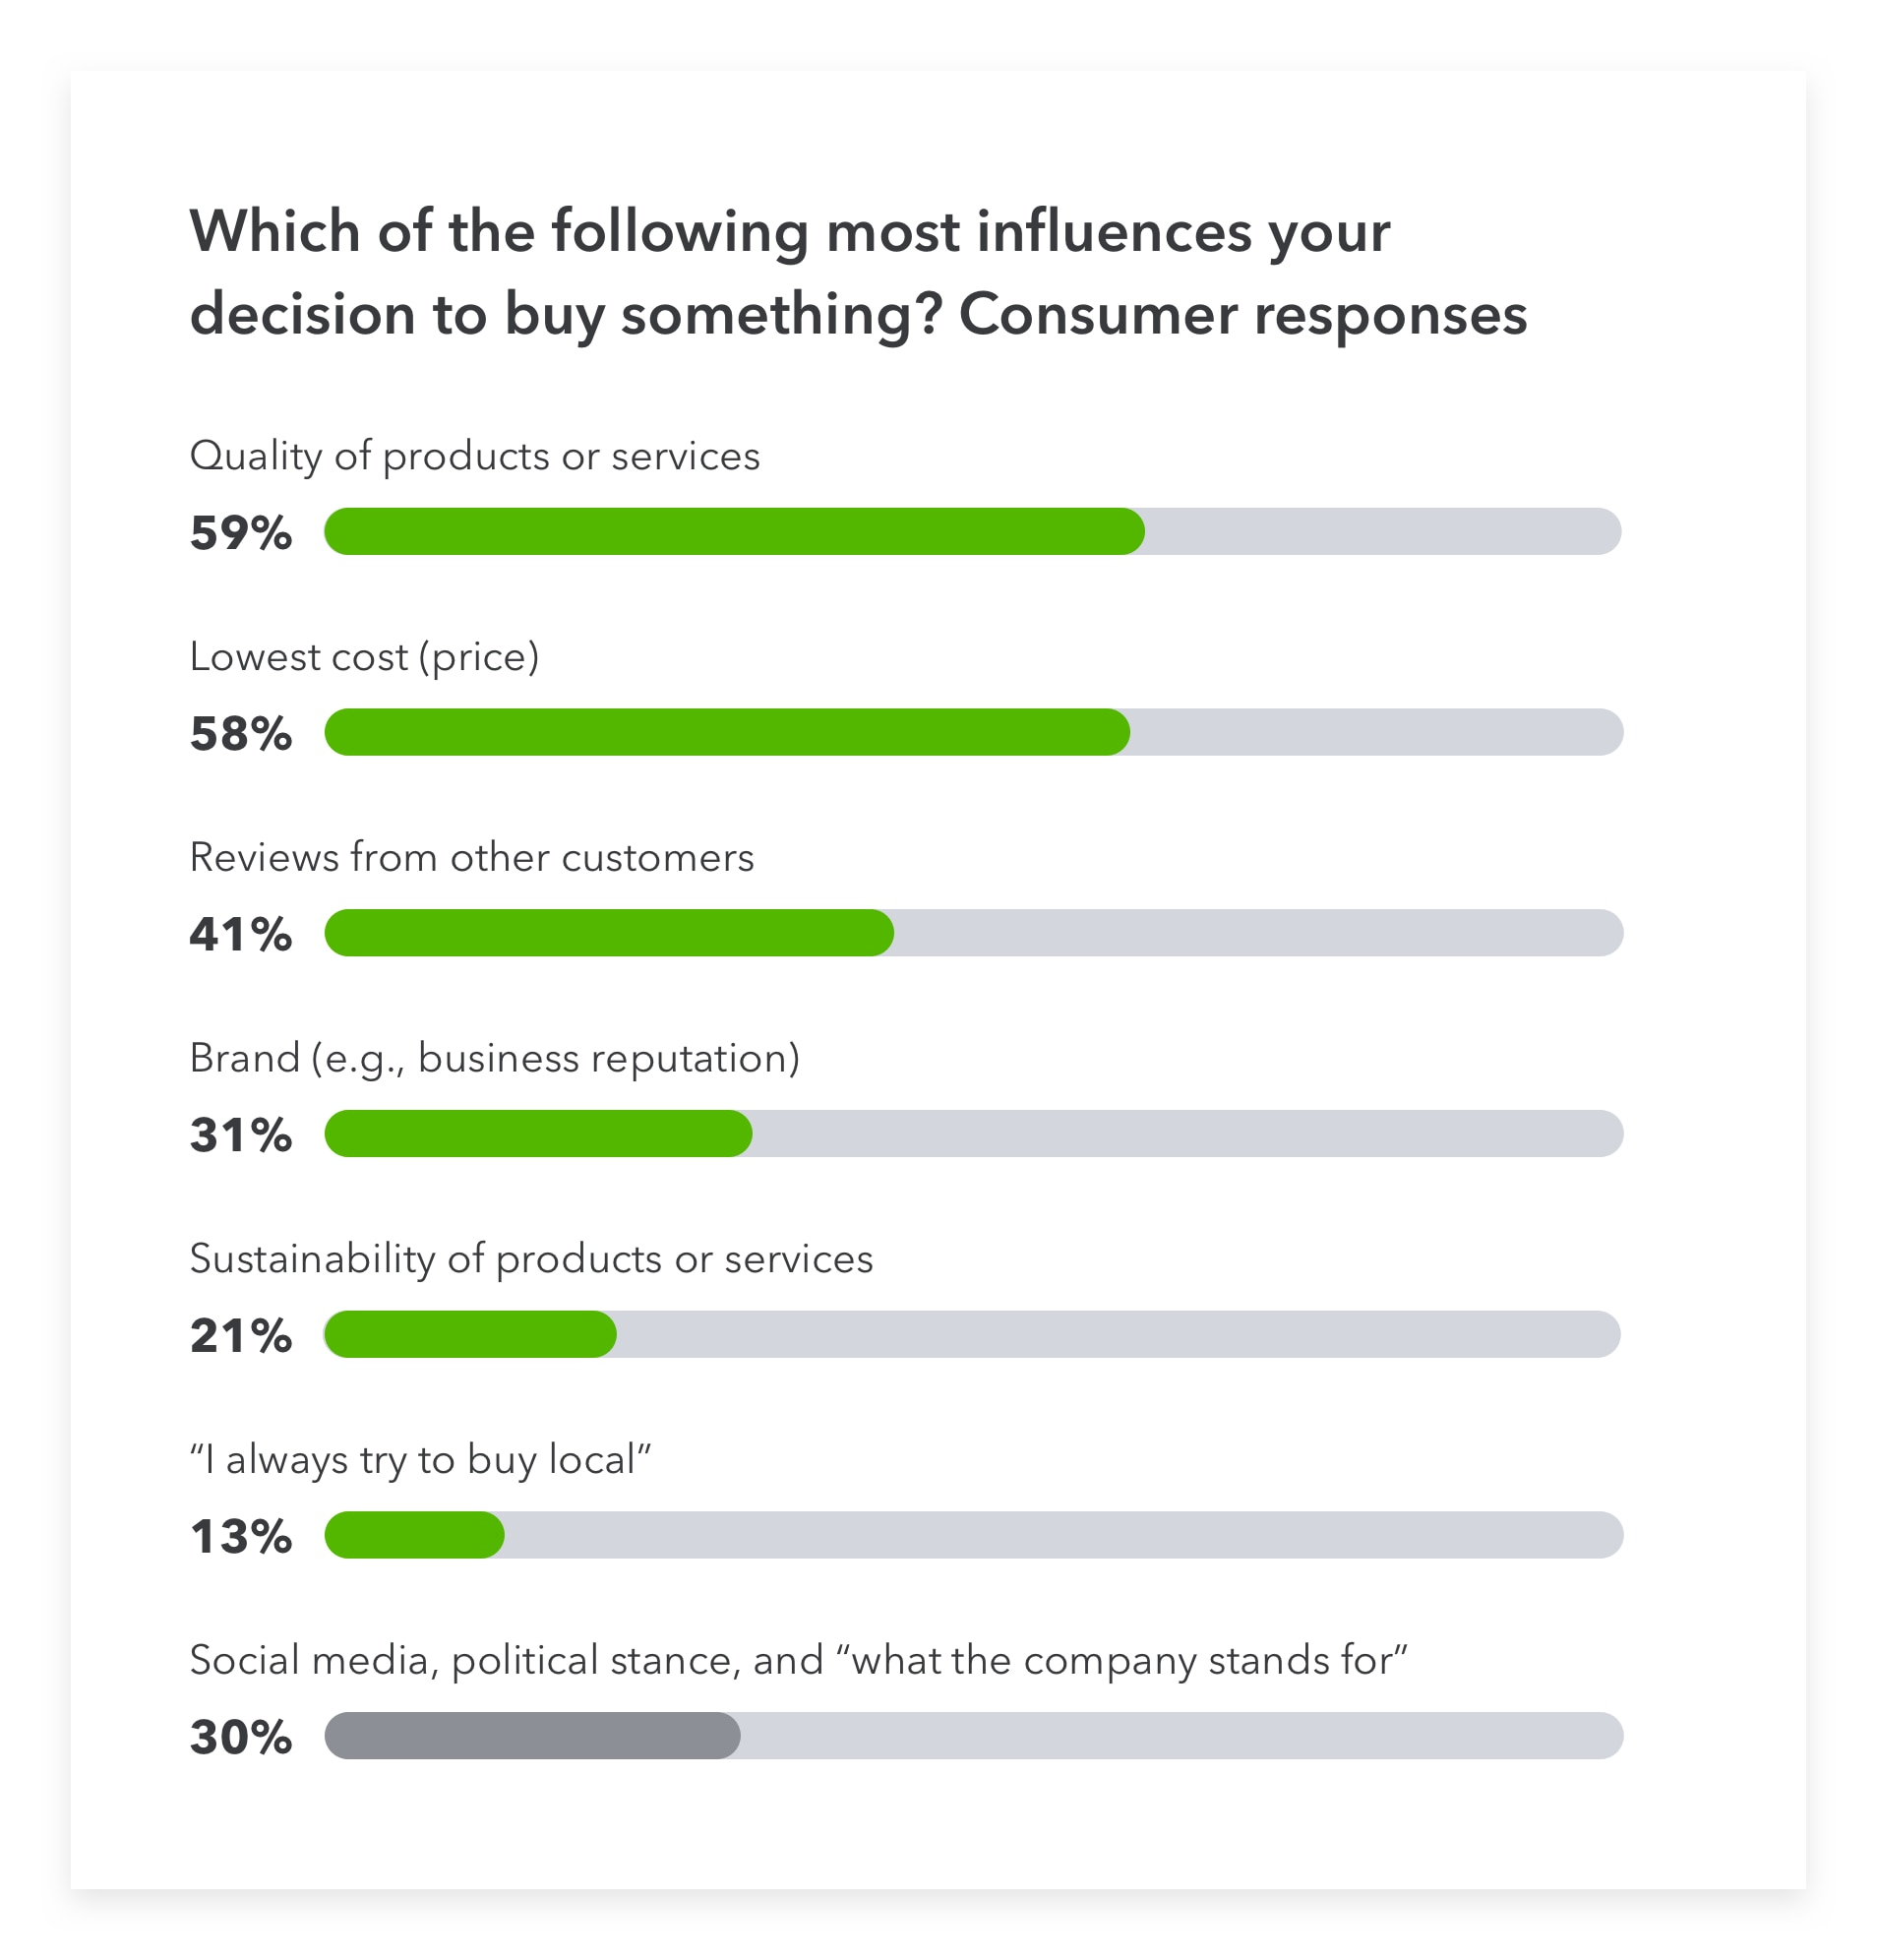 Which of the following most influences your decision to buy something? Consumer responses